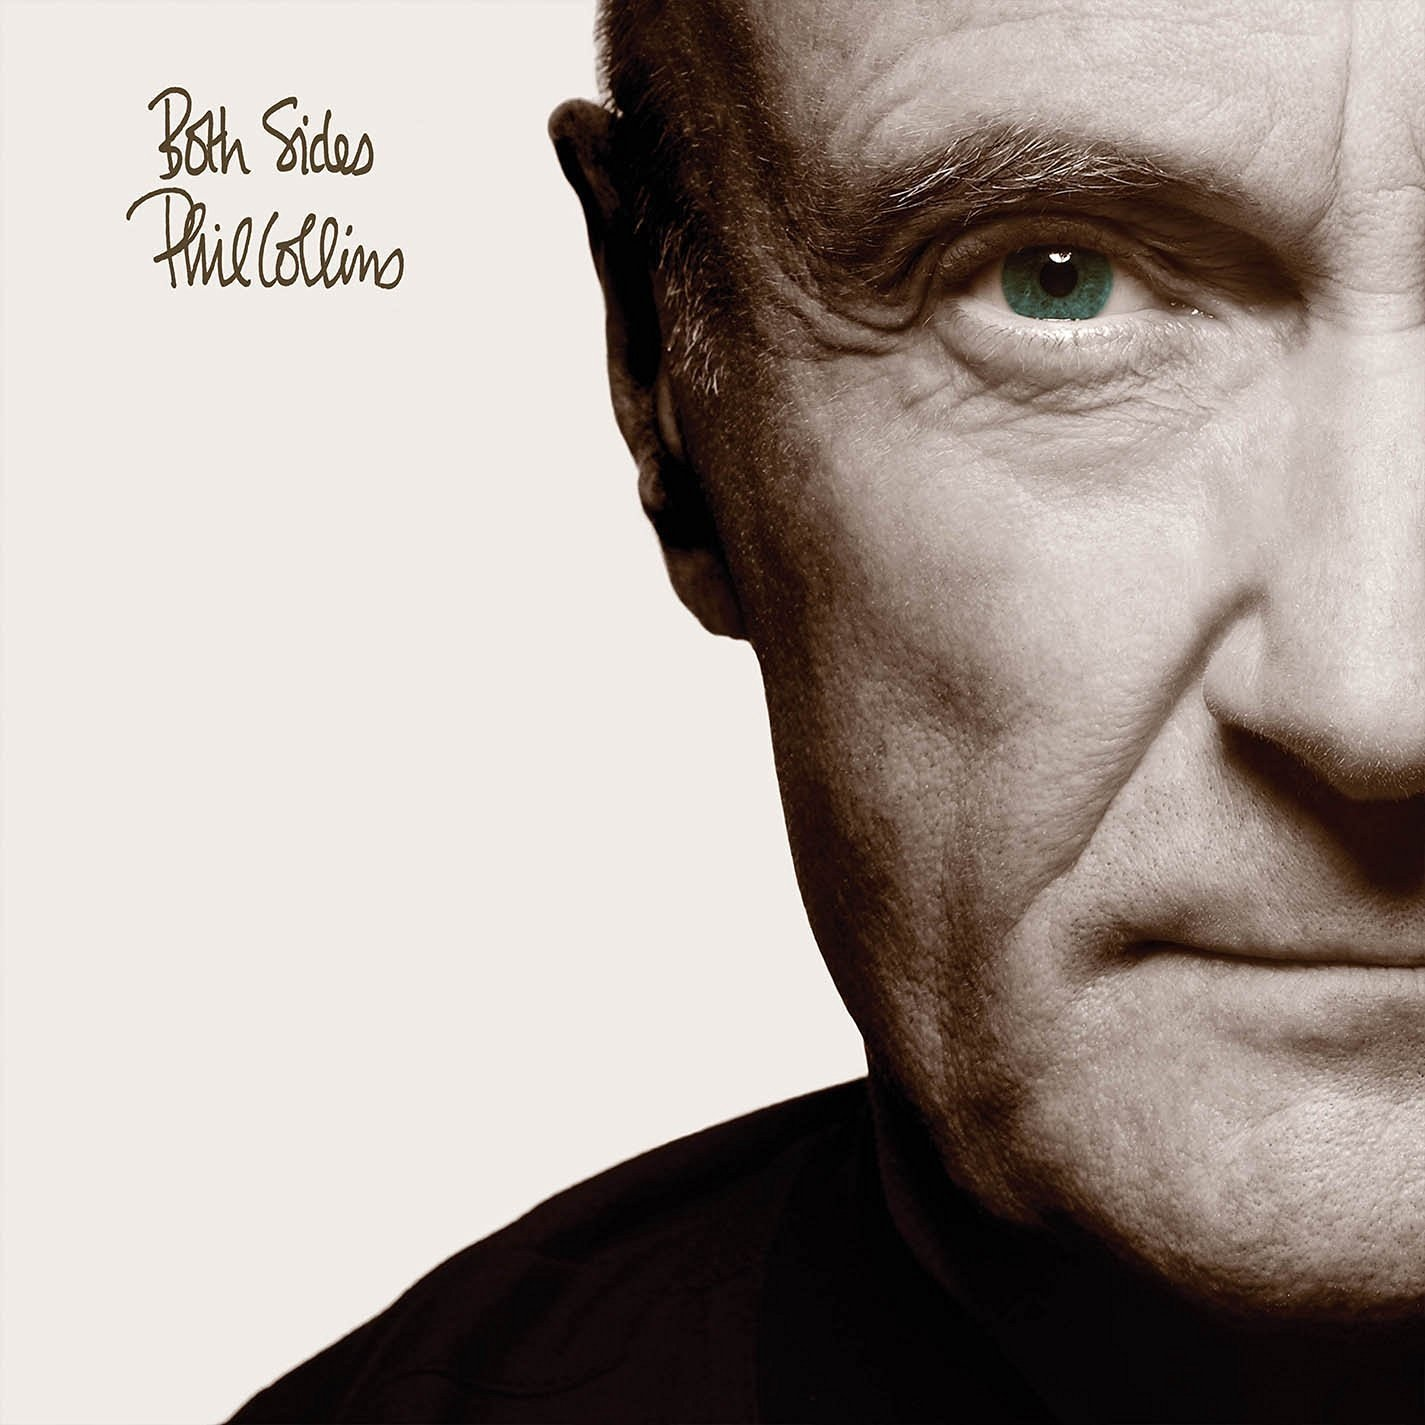 Phil Collins. Both Sides. Remastered (2 LP) виниловая пластинка phil collins take a look at me now collectors edition